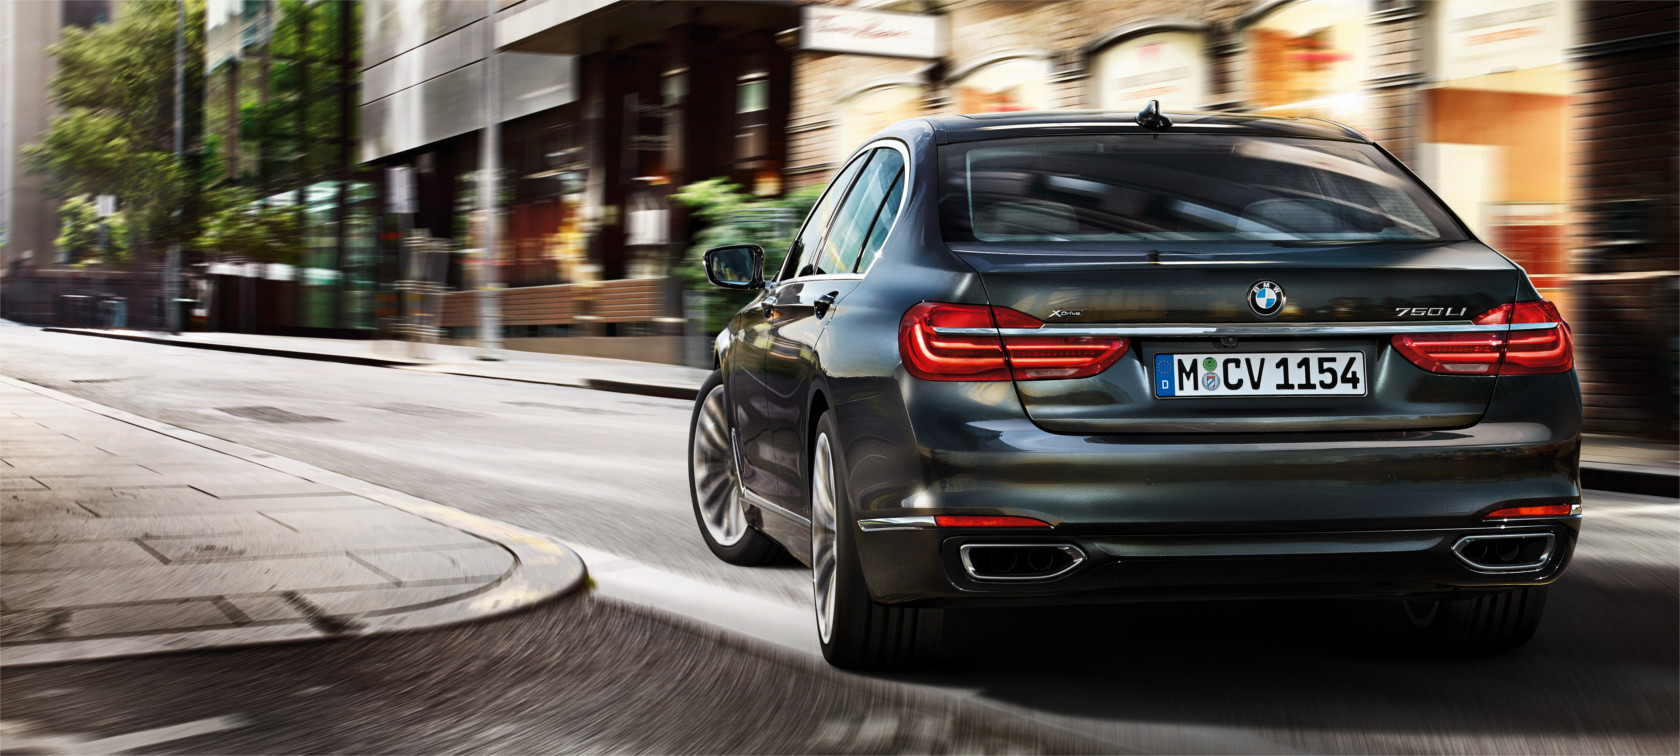 Driving dynamics & efficiency of the BMW 7 Series